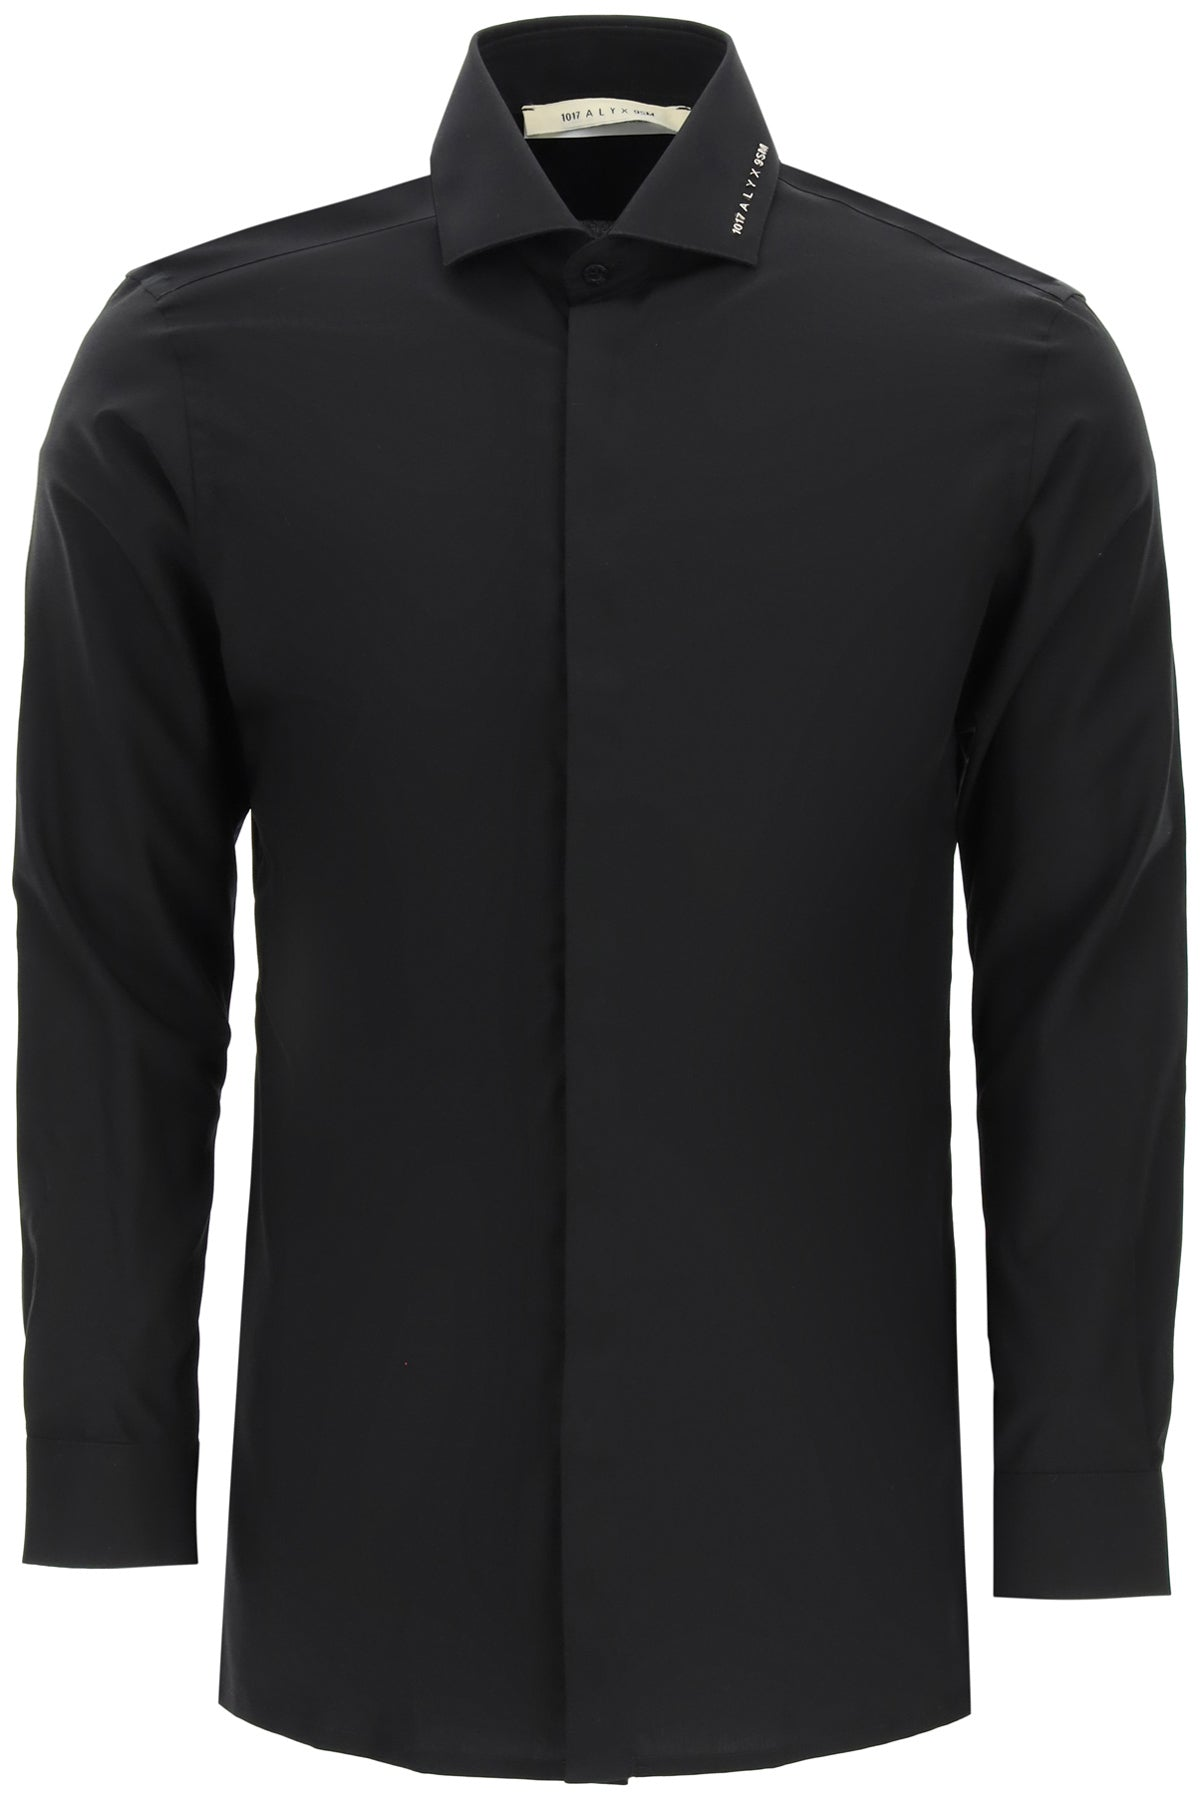 Alyx Cottons 1017 ALYX 9SM CLASSIC TAILORED SHIRT